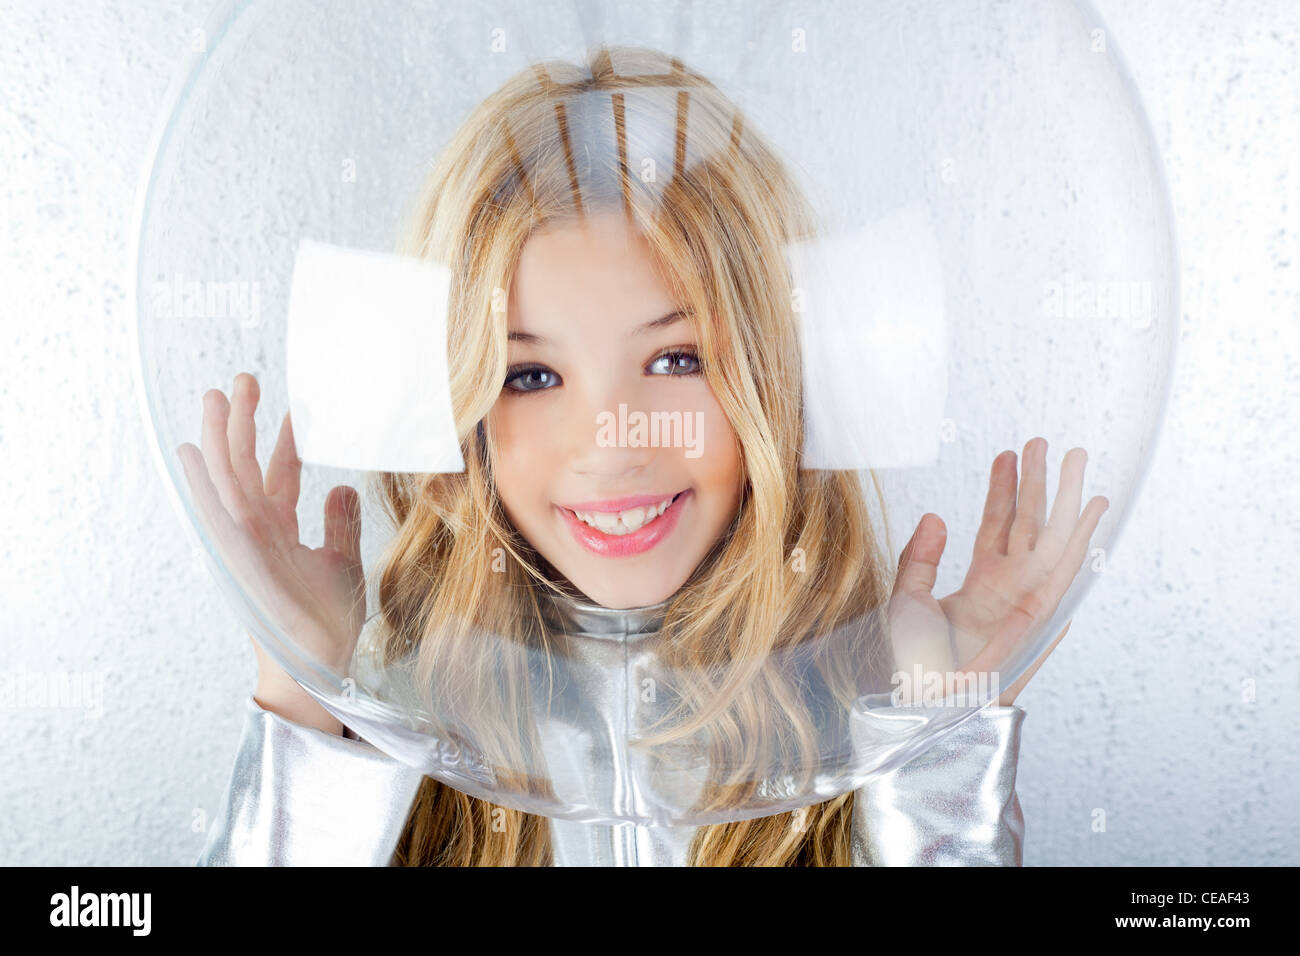 futuristic little girl with space suit - Stock Image